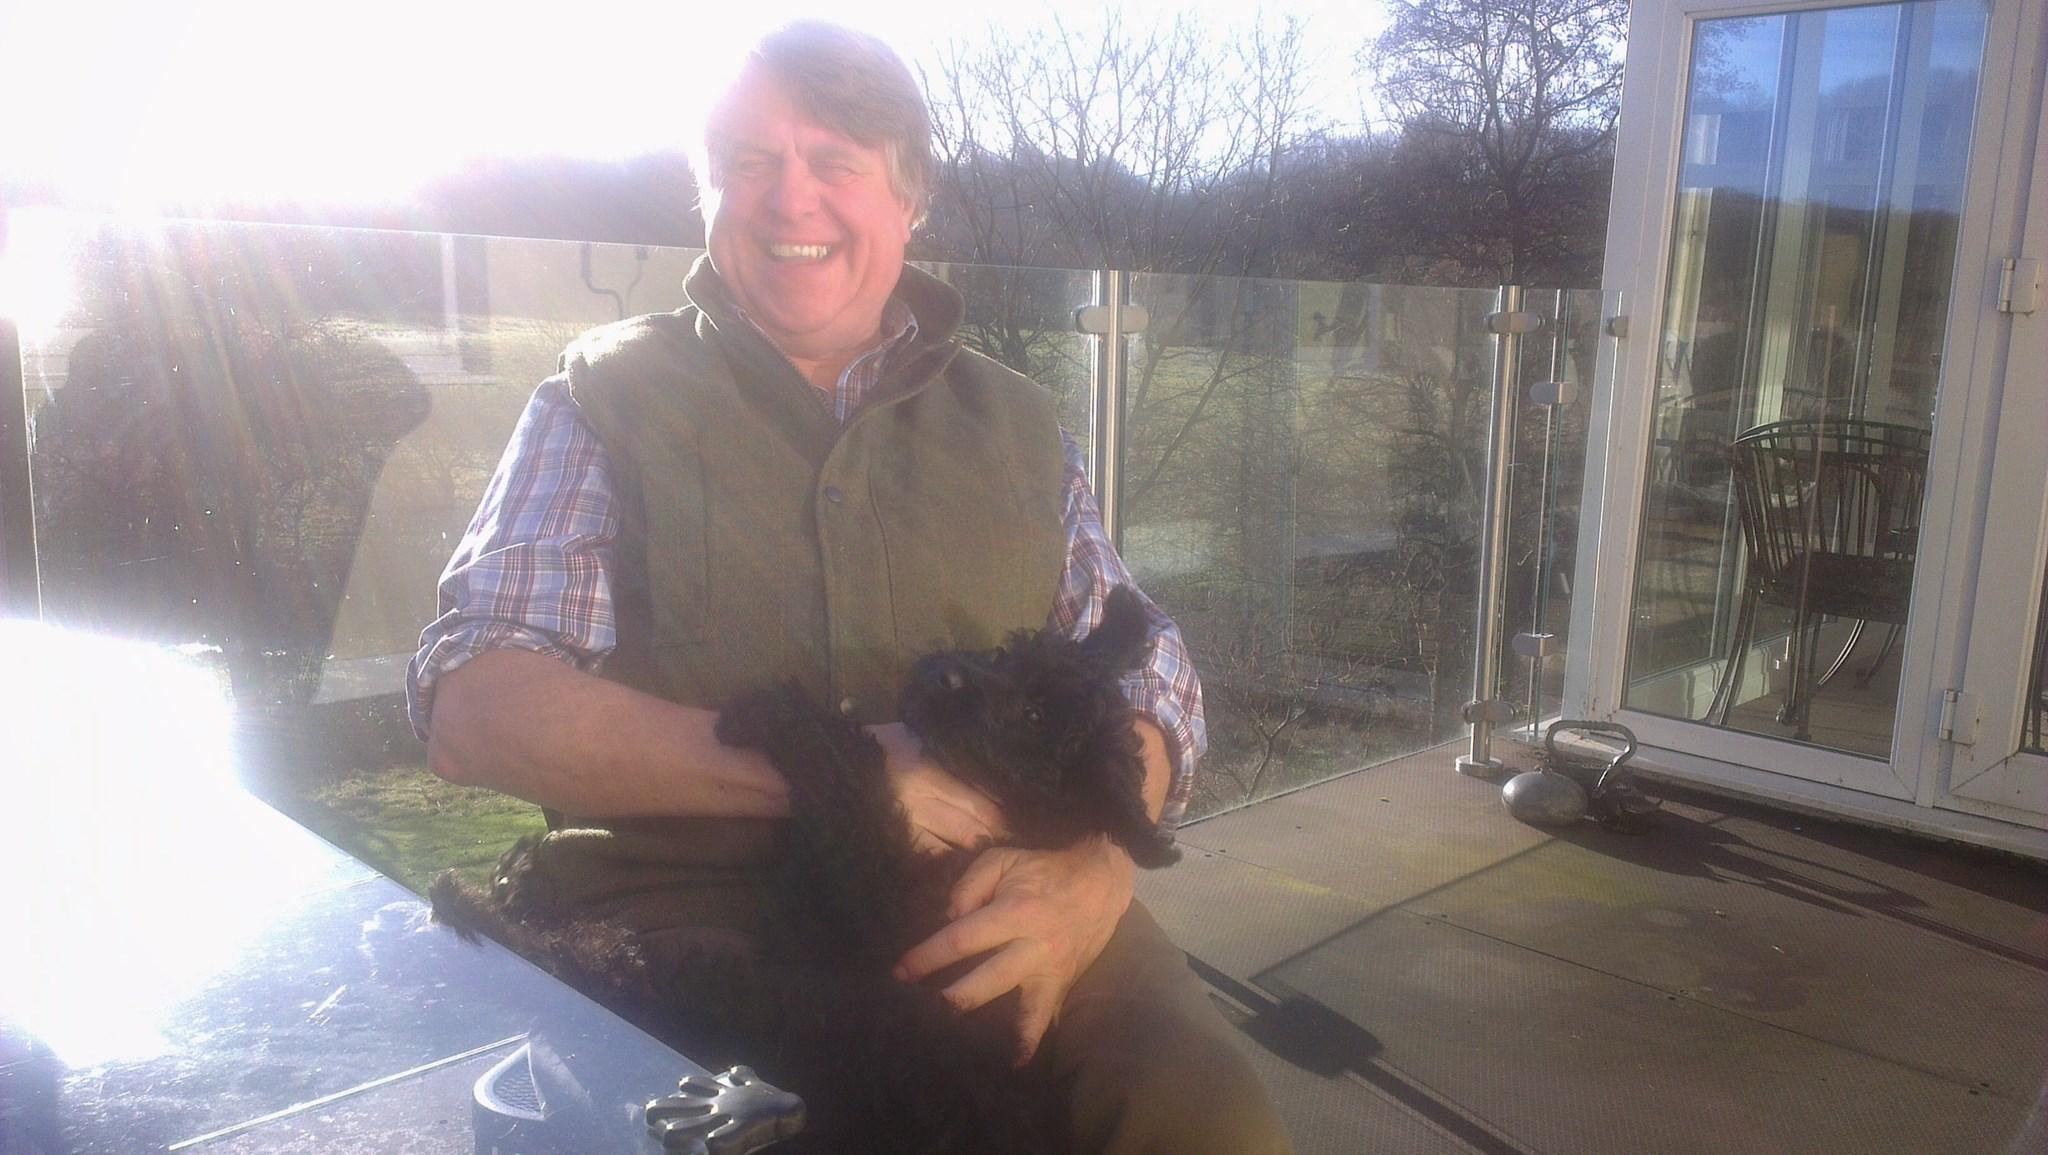 Jon loving his dog Esk in the sunshine at his lovely home